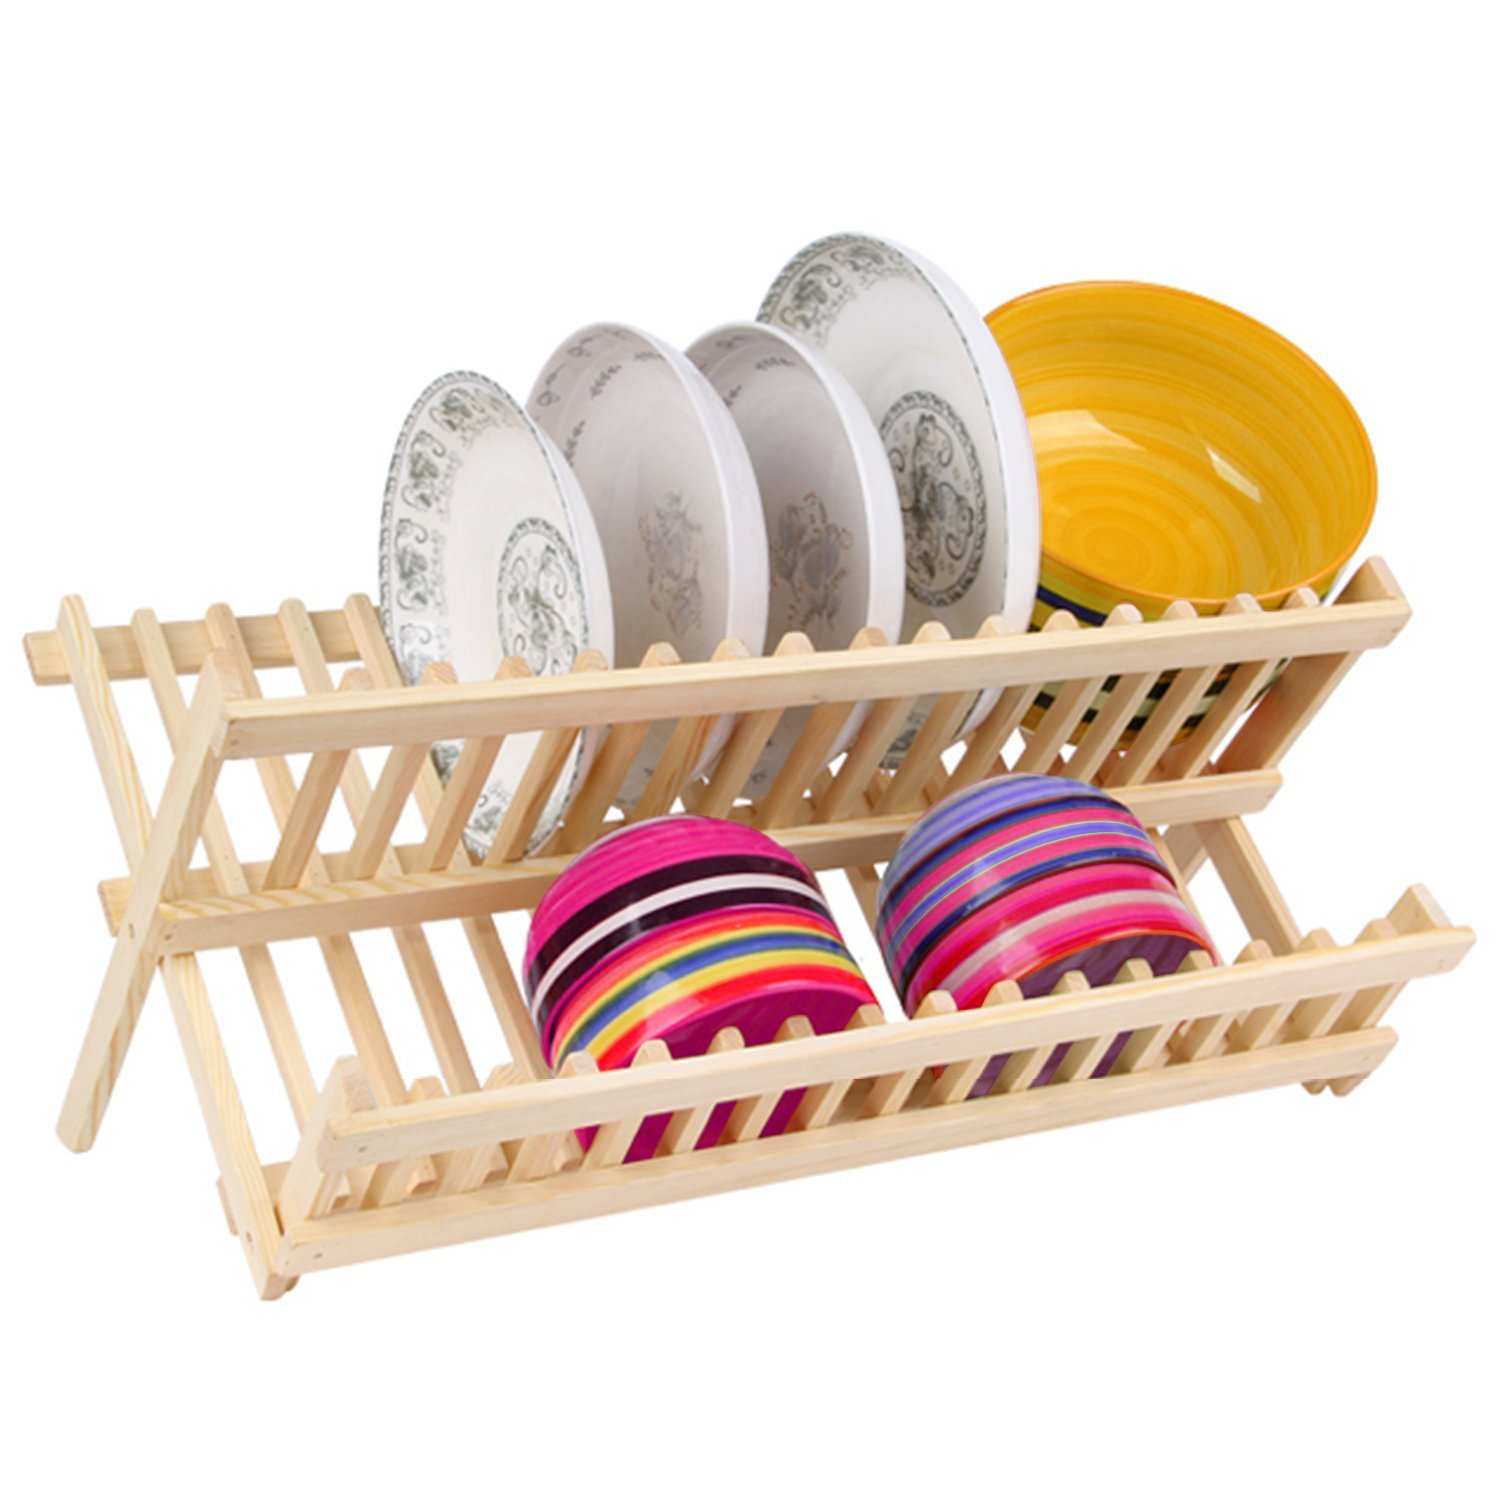 multilayer storage in double layer drain dishes draining plastic item kitchen chopsticks racks from rack shelves box cupboard tableware holders